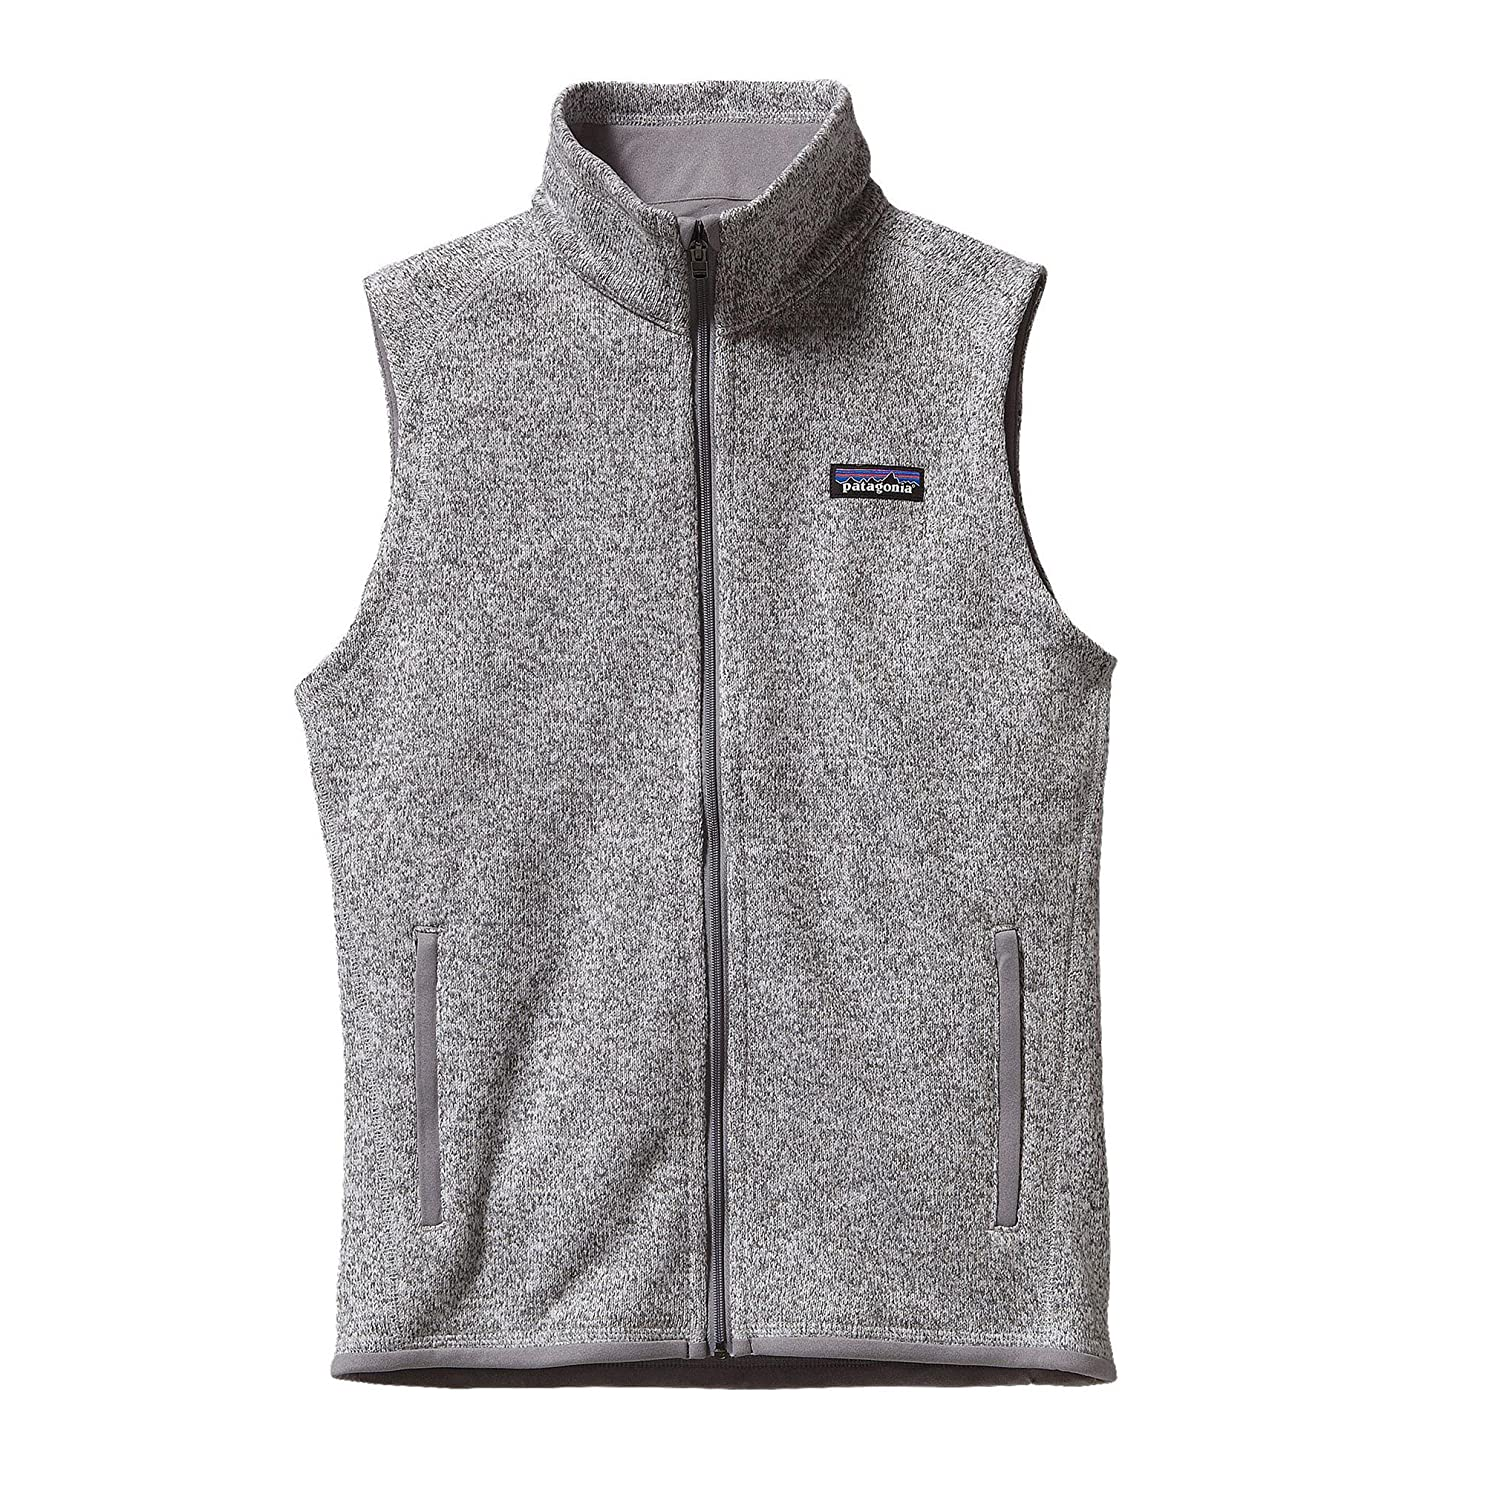 Patagonia Women's Better Sweater Fleece Vest at Amazon Women's ...